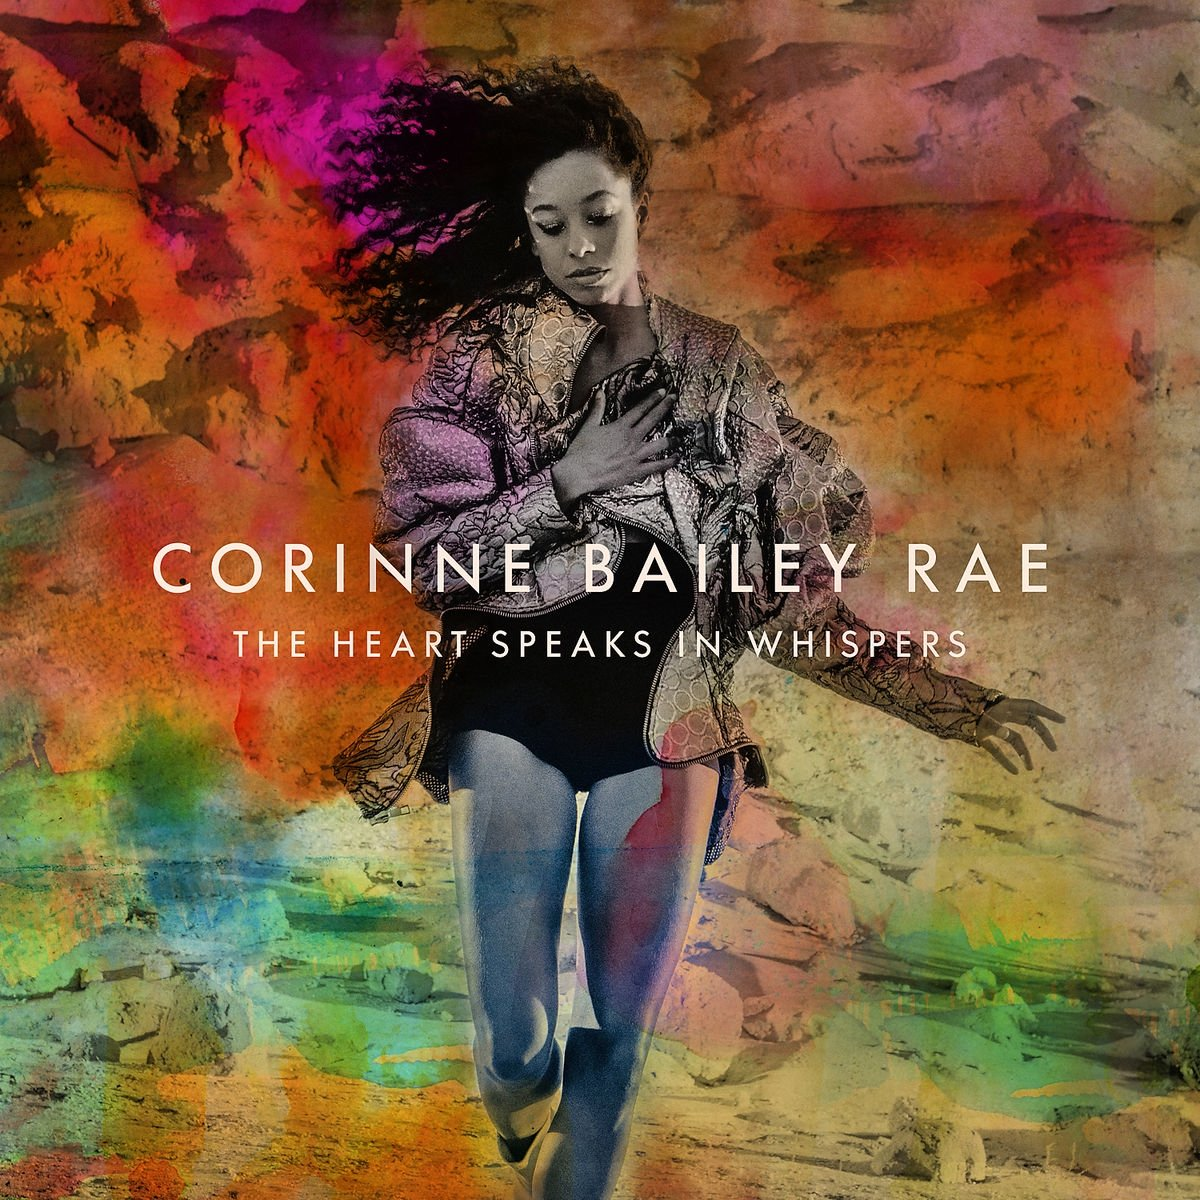 Corinne Bailey Rae - The Heart Speaks In Whispers (Deluxe Edition) | CD kopen